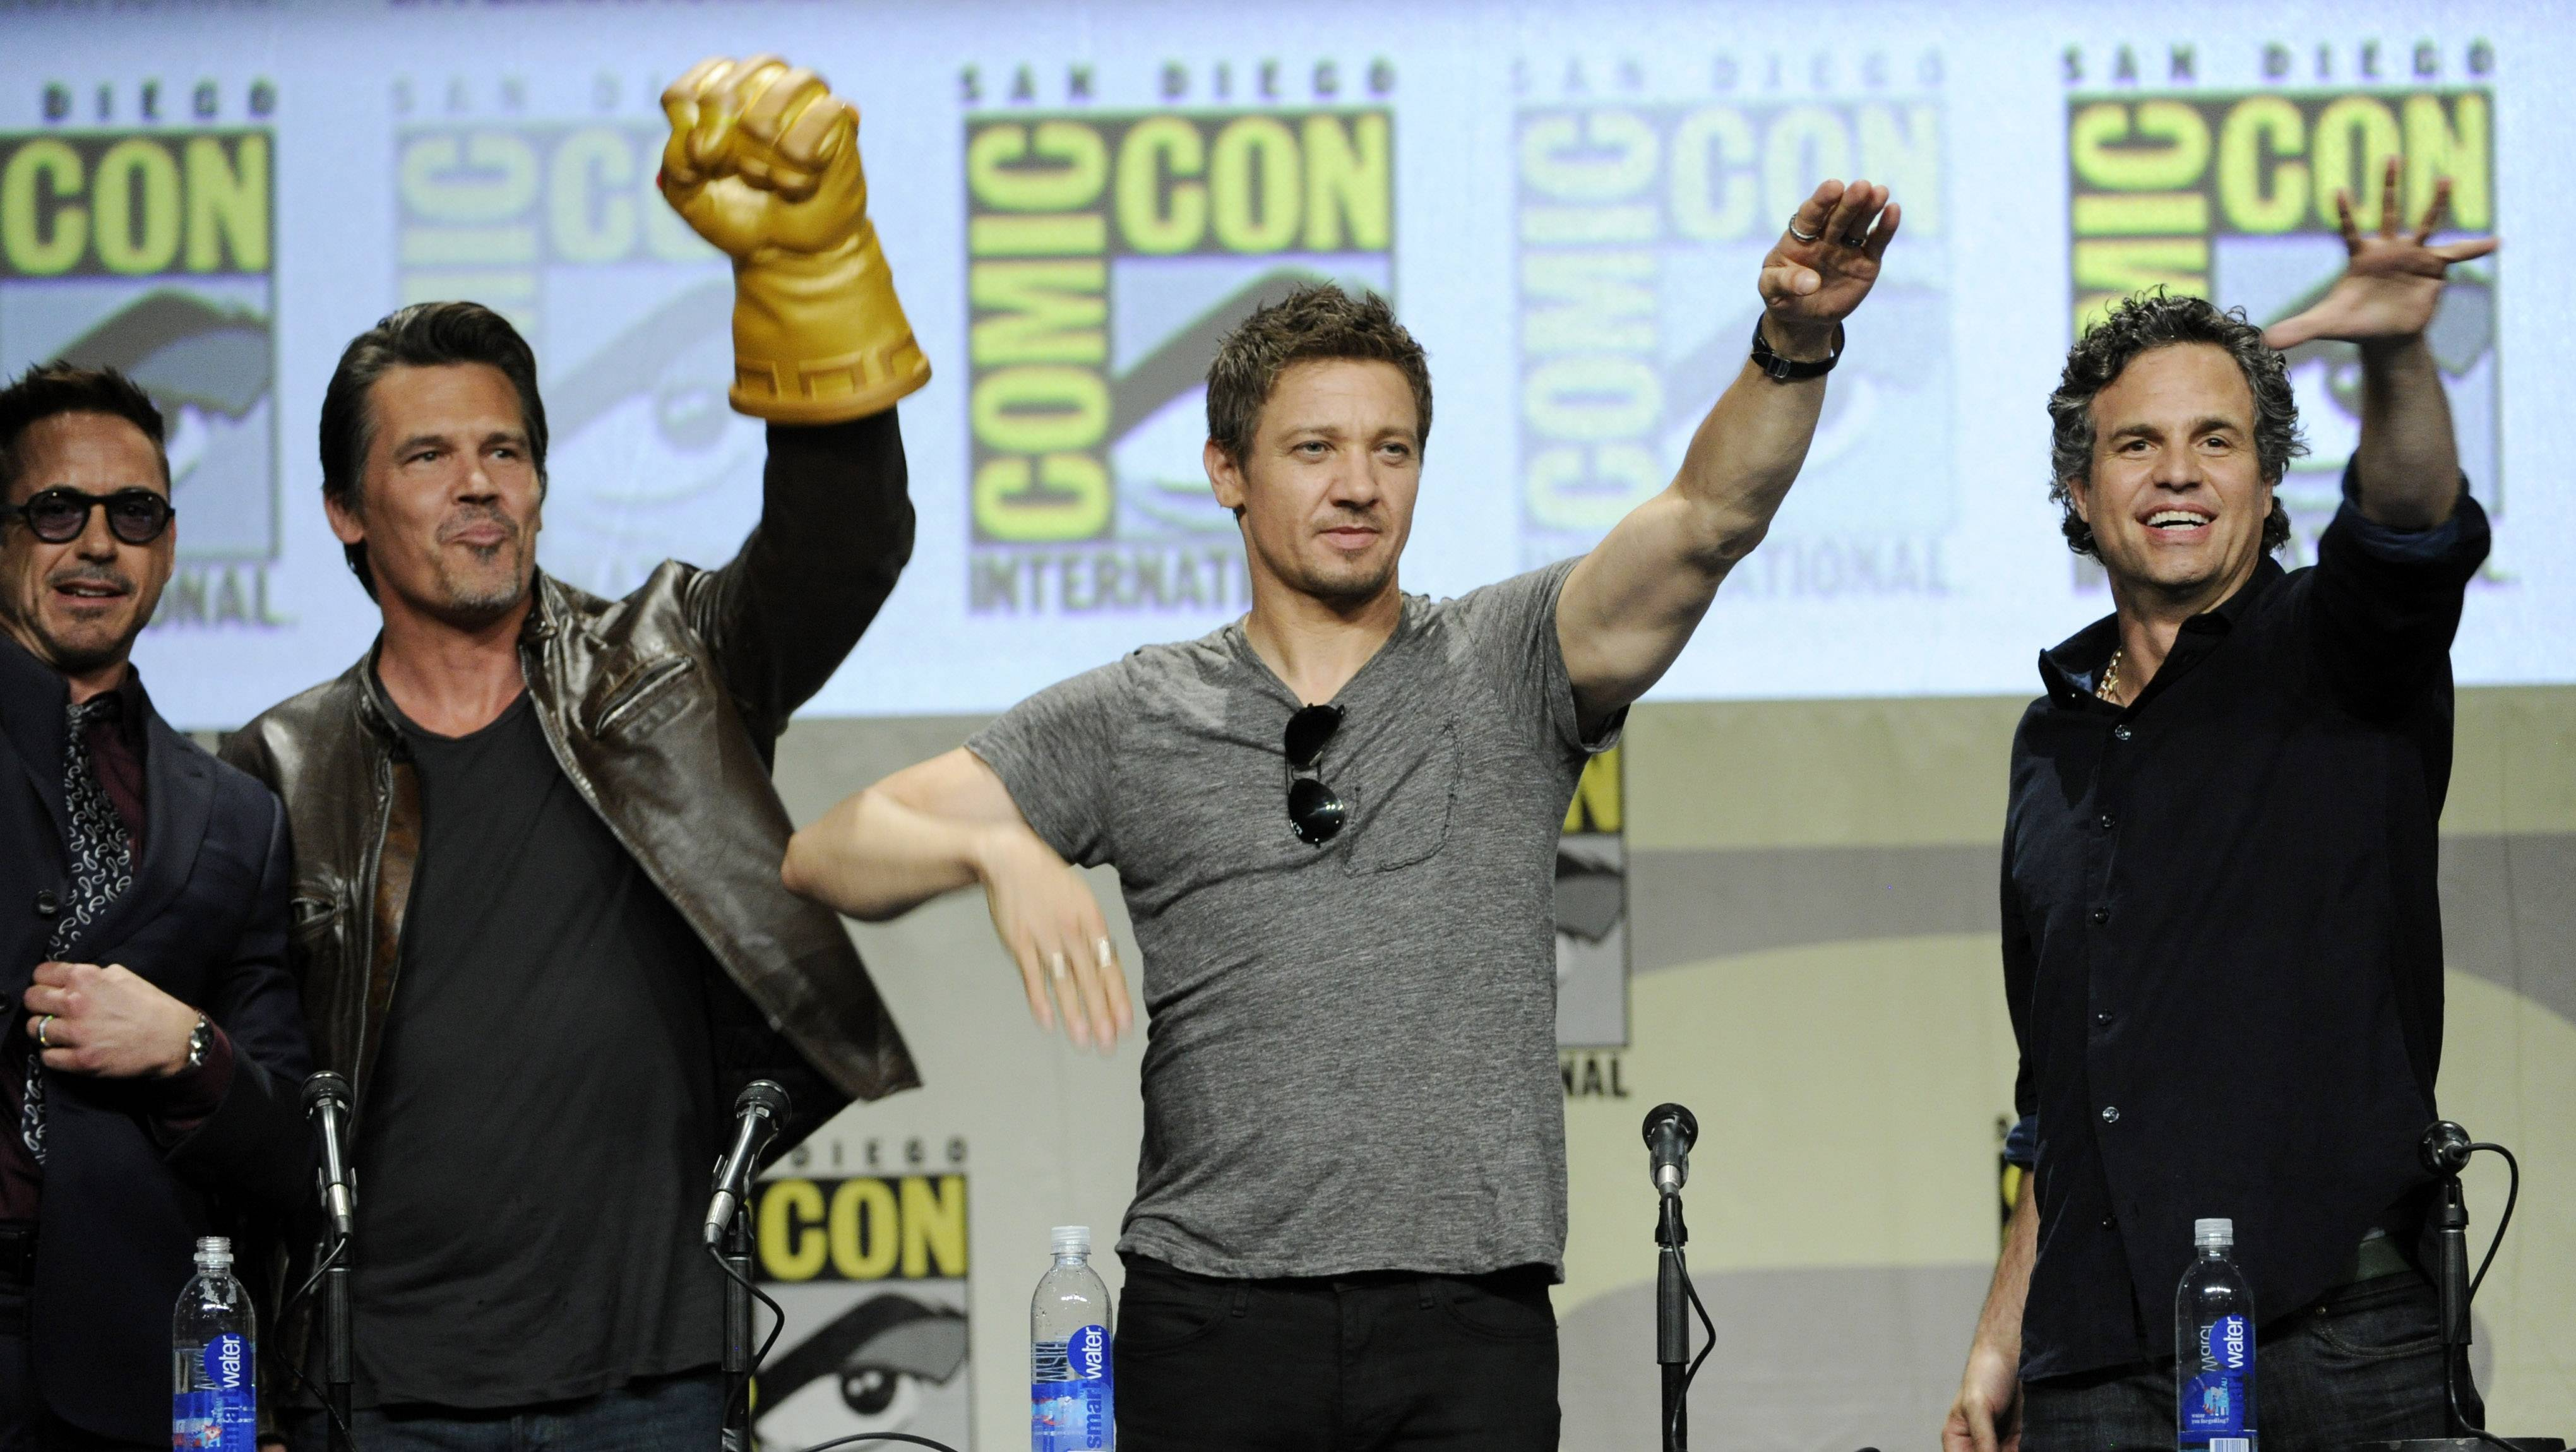 Robert Downey Jr., from left, Josh Brolin, Jeremy Renner and Mark Ruffalo wave to the crowd during the Marvel panel at Comic-Con International on Saturday in San Diego, Calif.